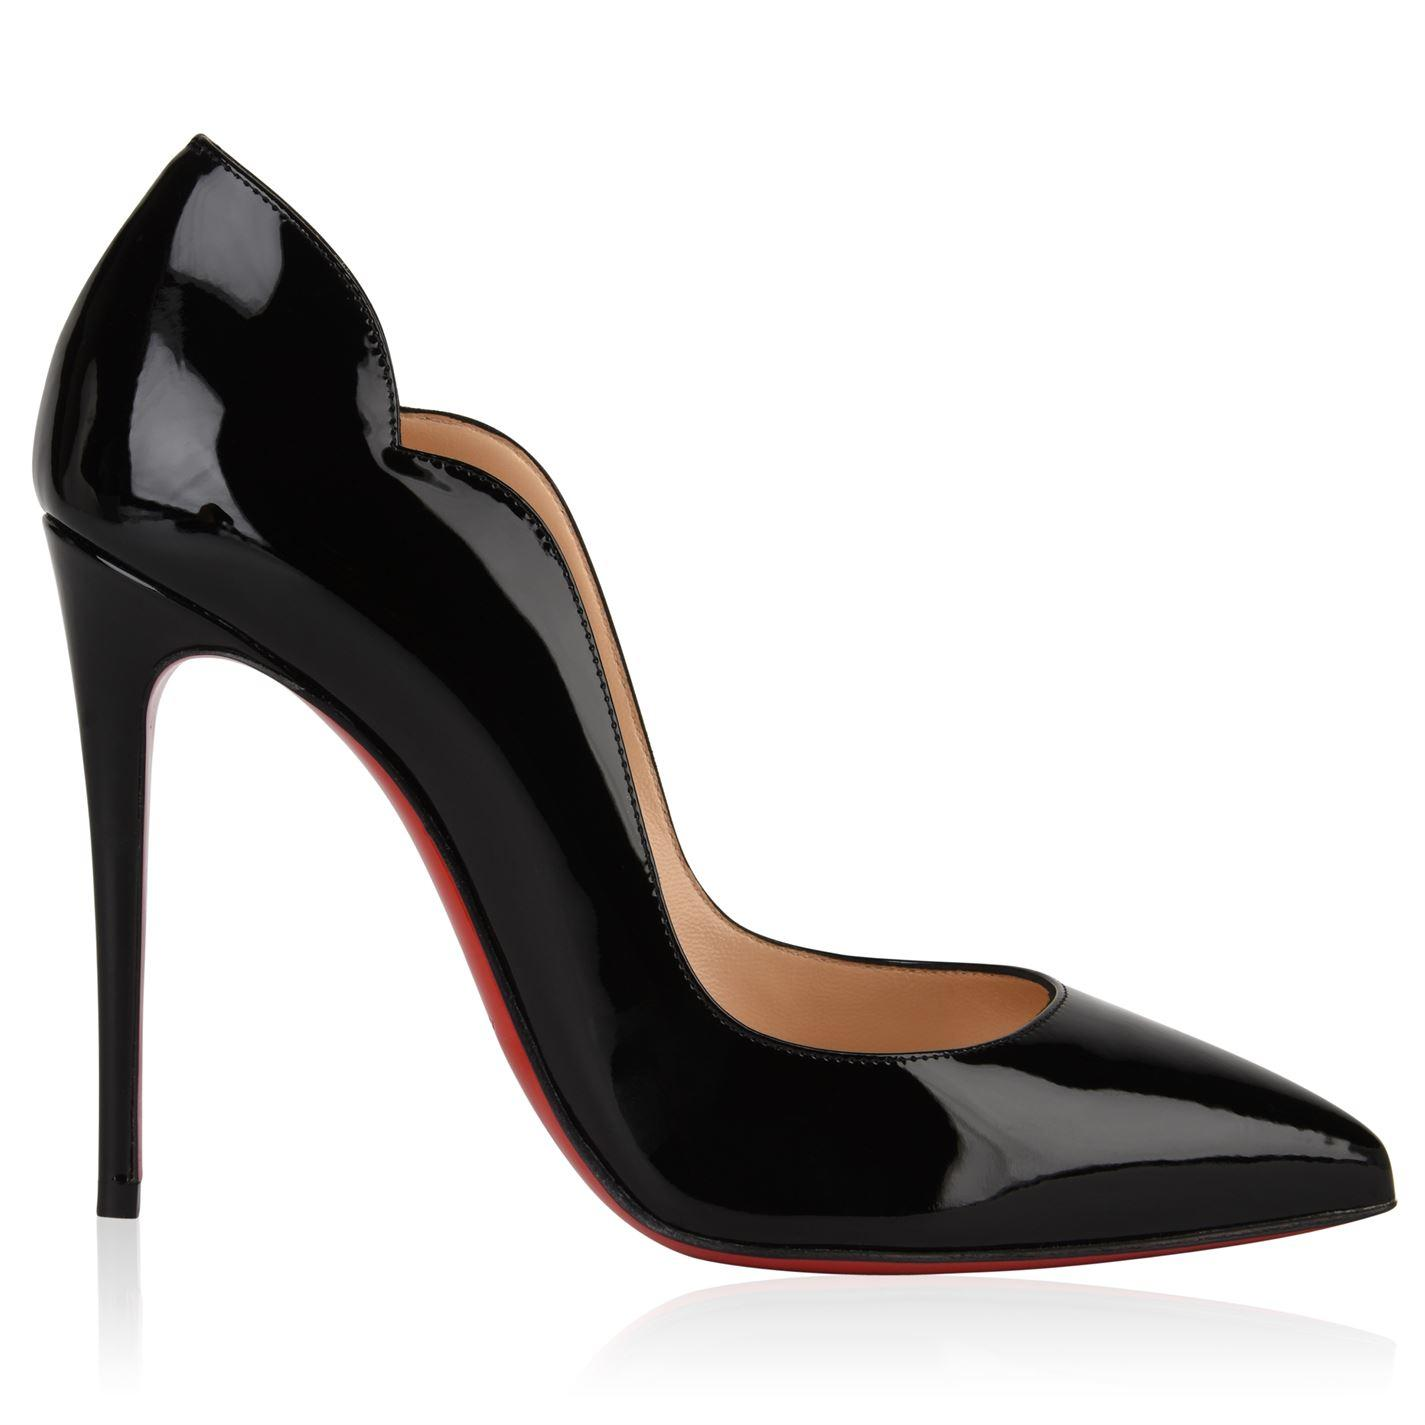 526c8ffc9d1 Lyst - Christian Louboutin Patent Hot Chick Heels in Black